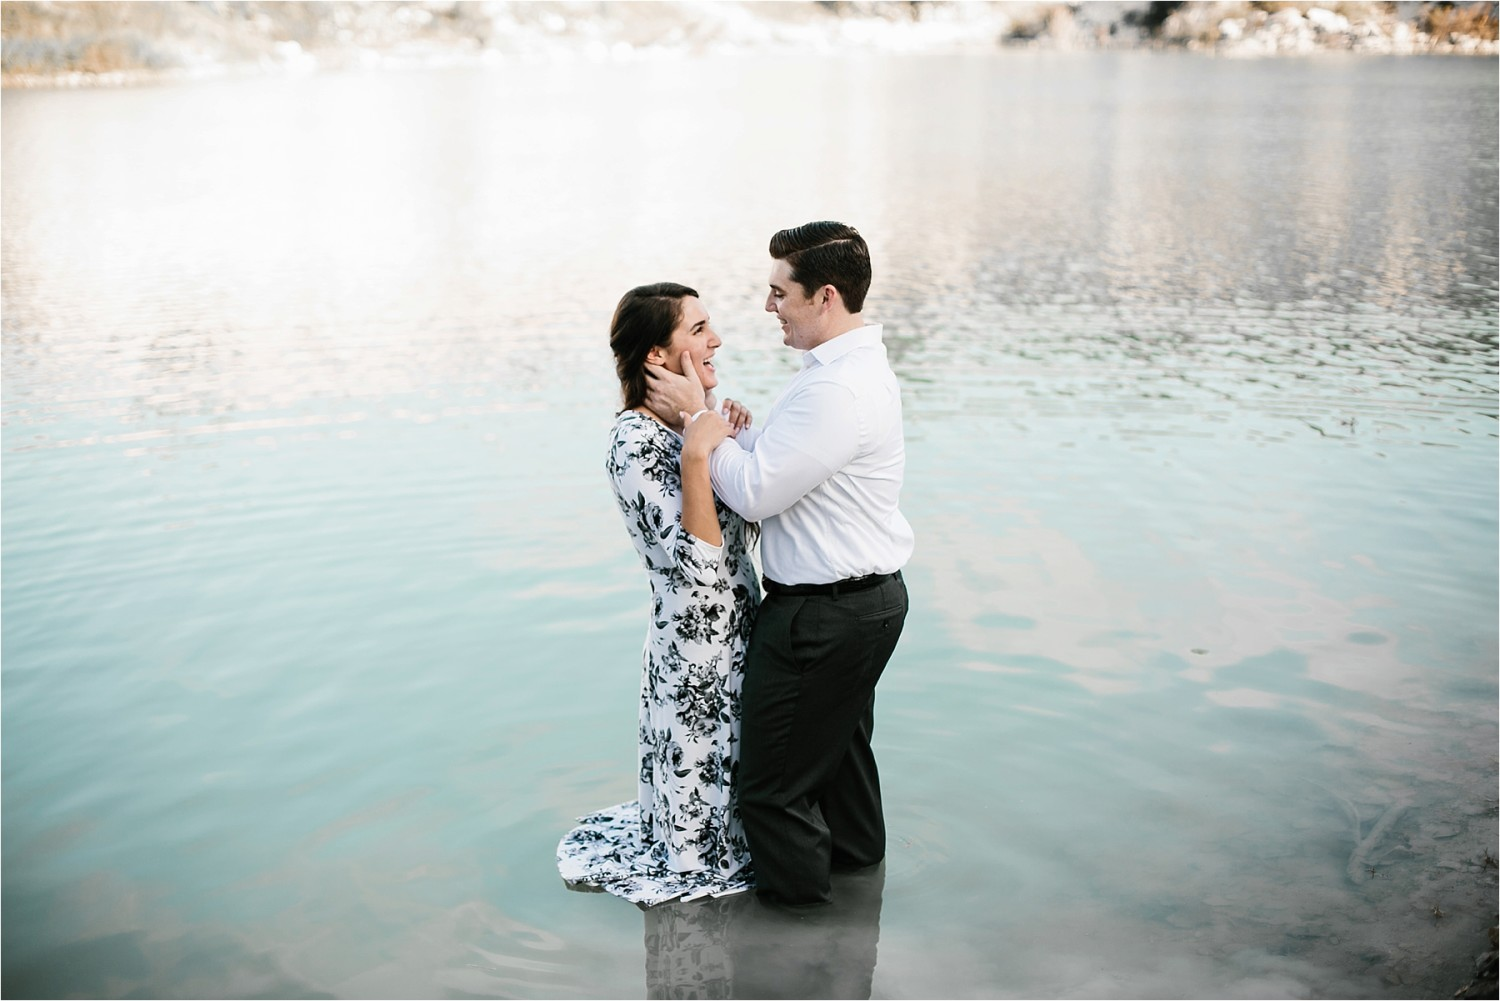 an-intimate-sunrise-session-by-north-texas-wedding-photographer-rachel-meagan-photography-_-41